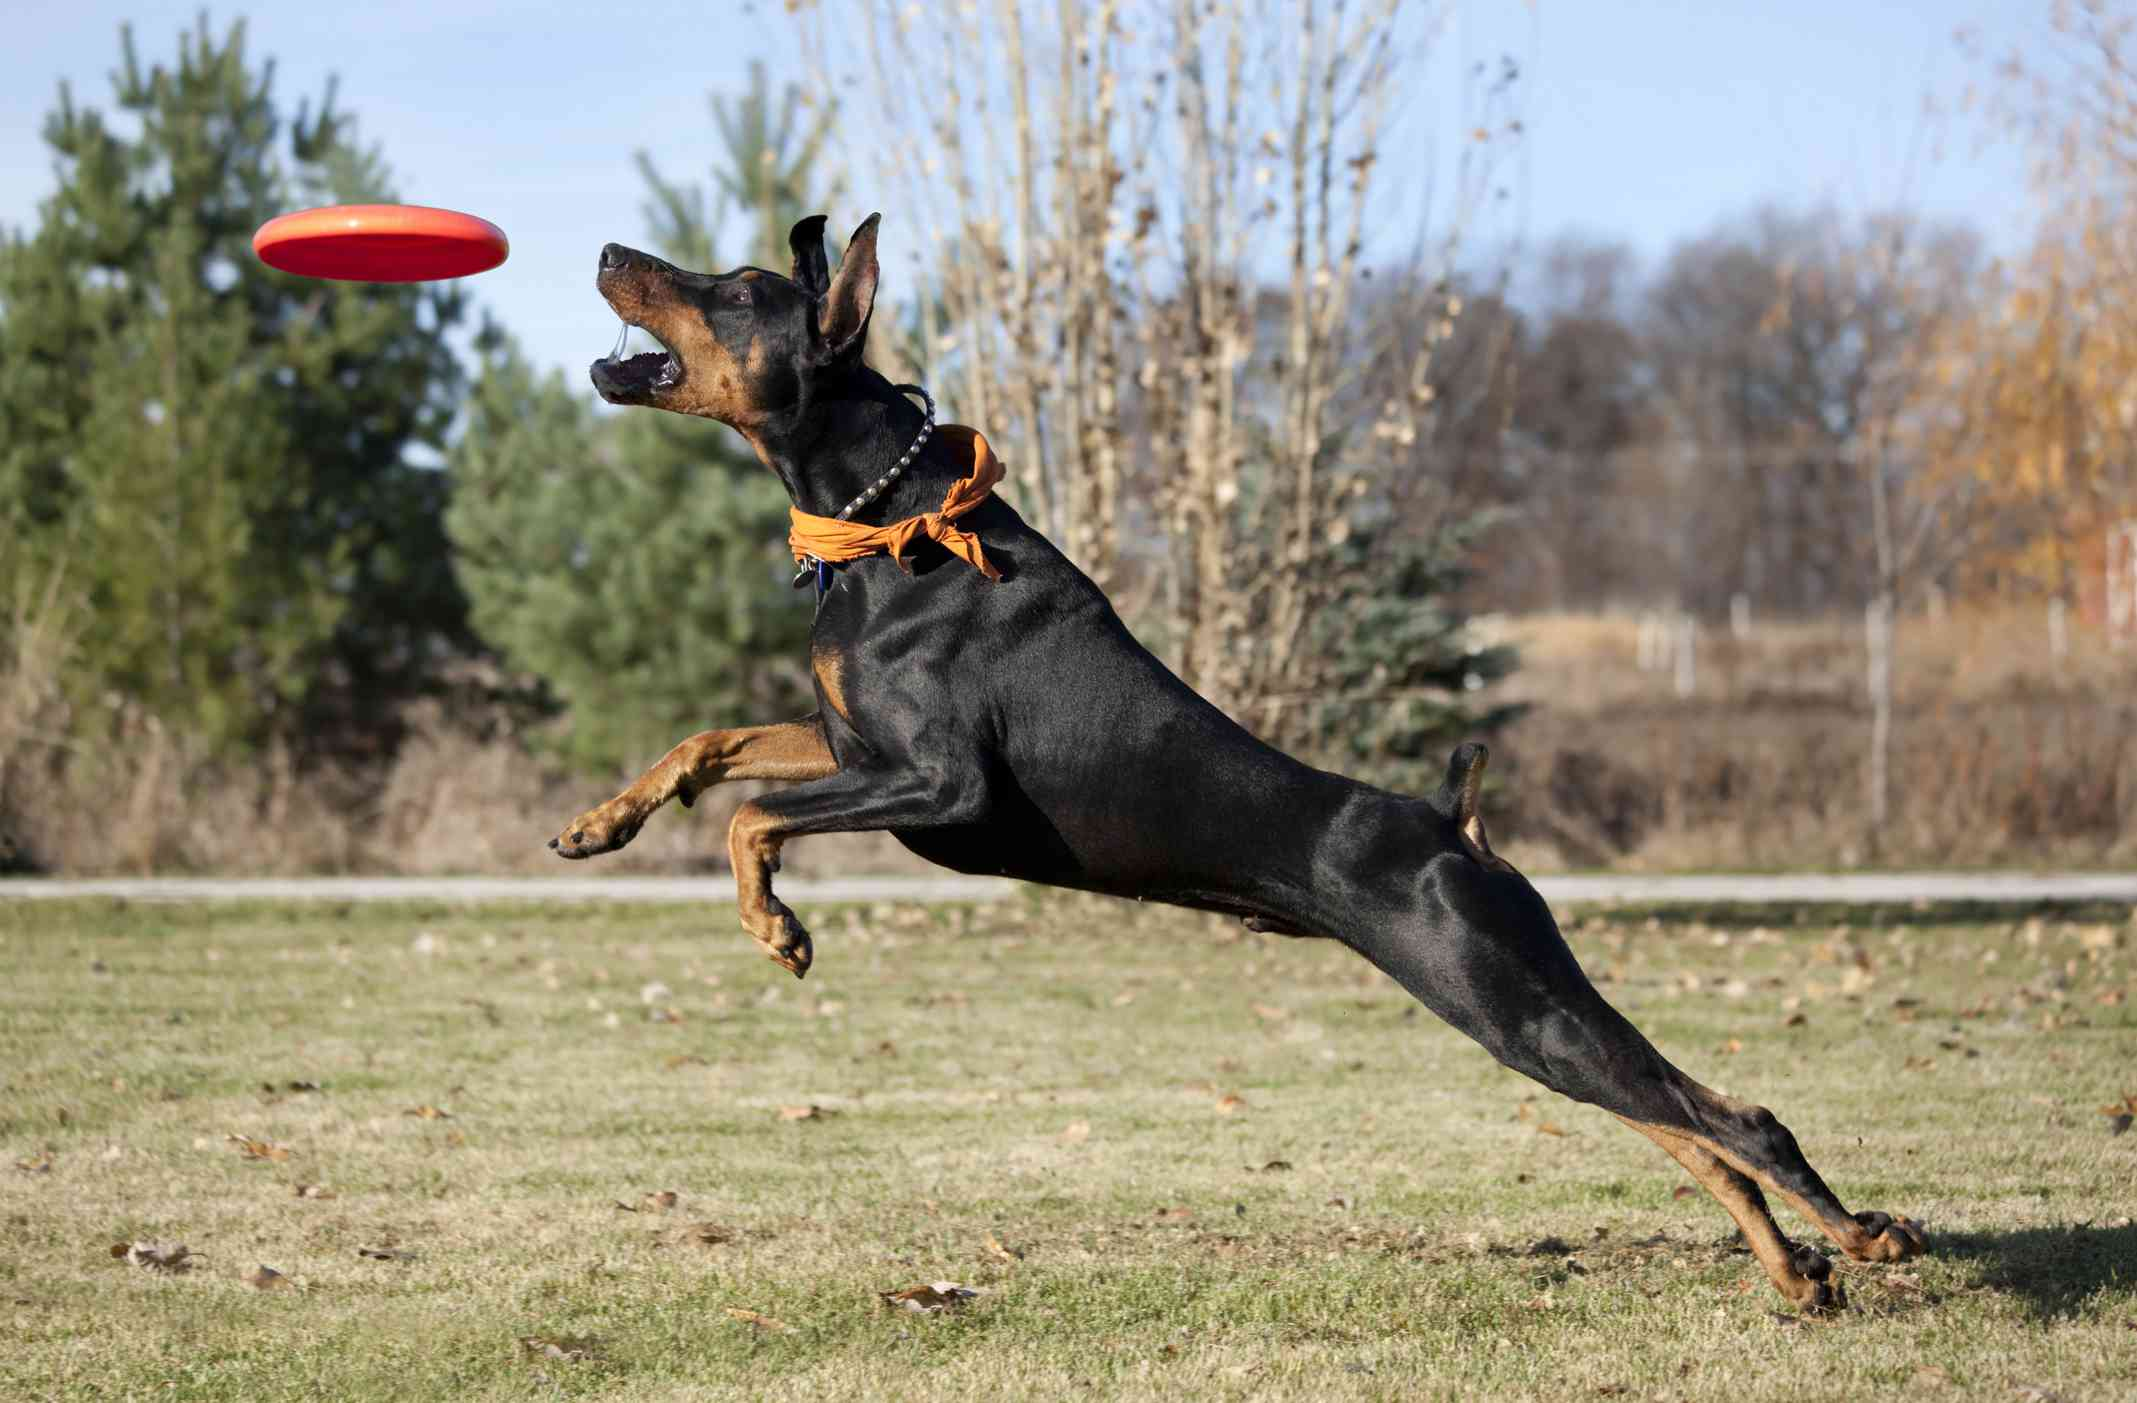 profile of doberman pinscher jumping and reaching to catch res frisbee